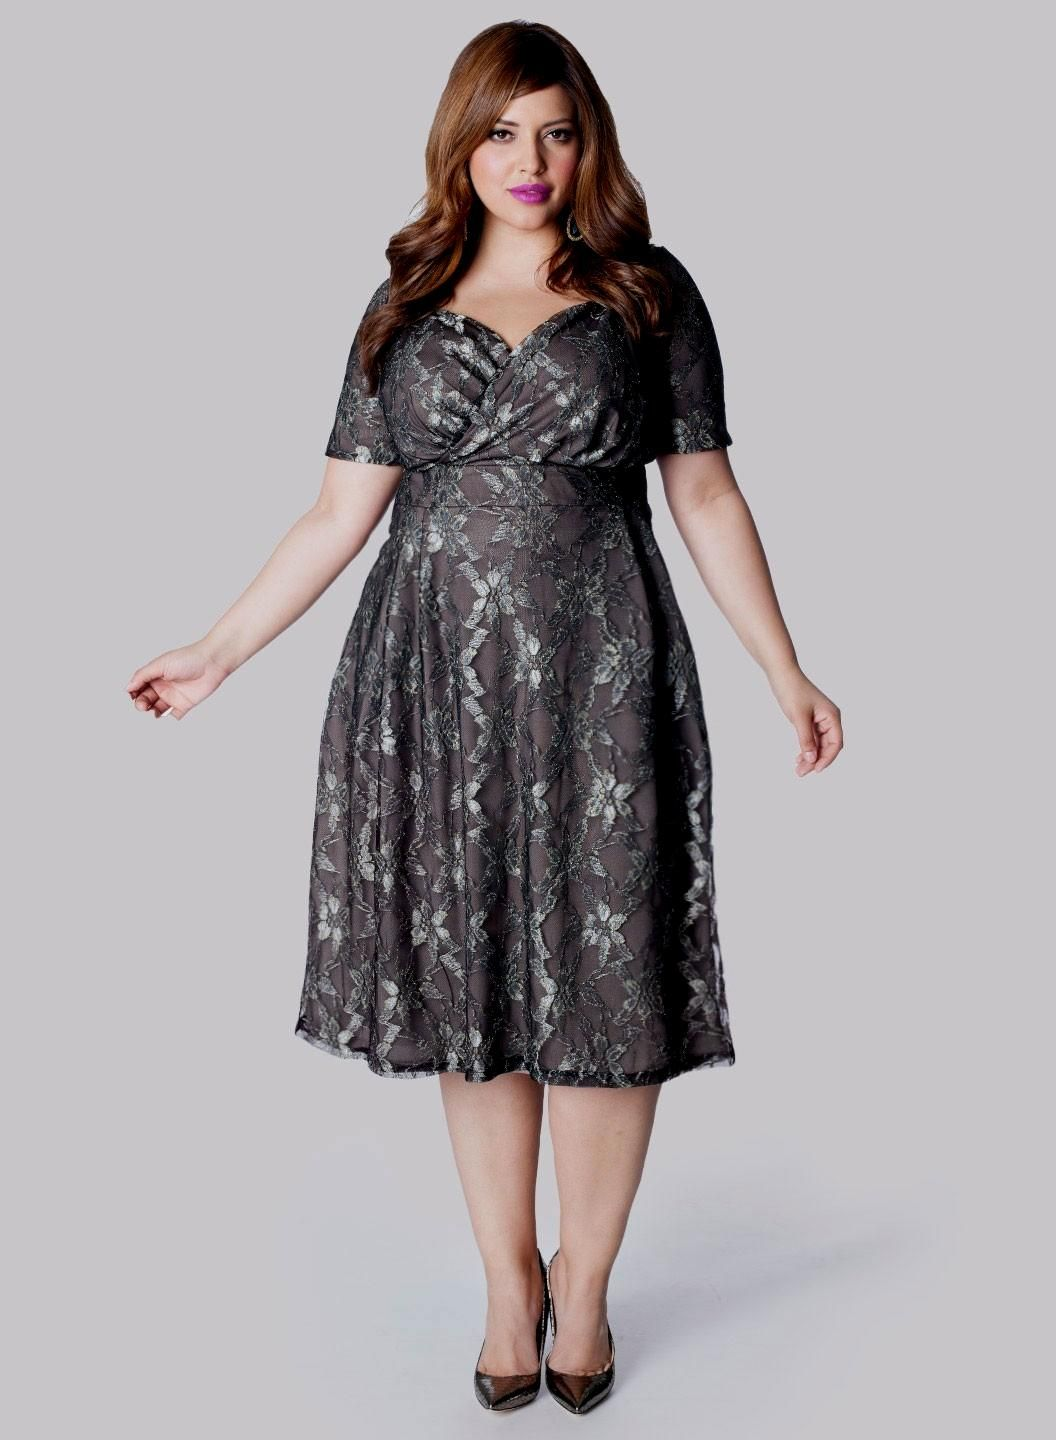 Womens Plus Size Dresses for All Occasions | Davids Bridal ...